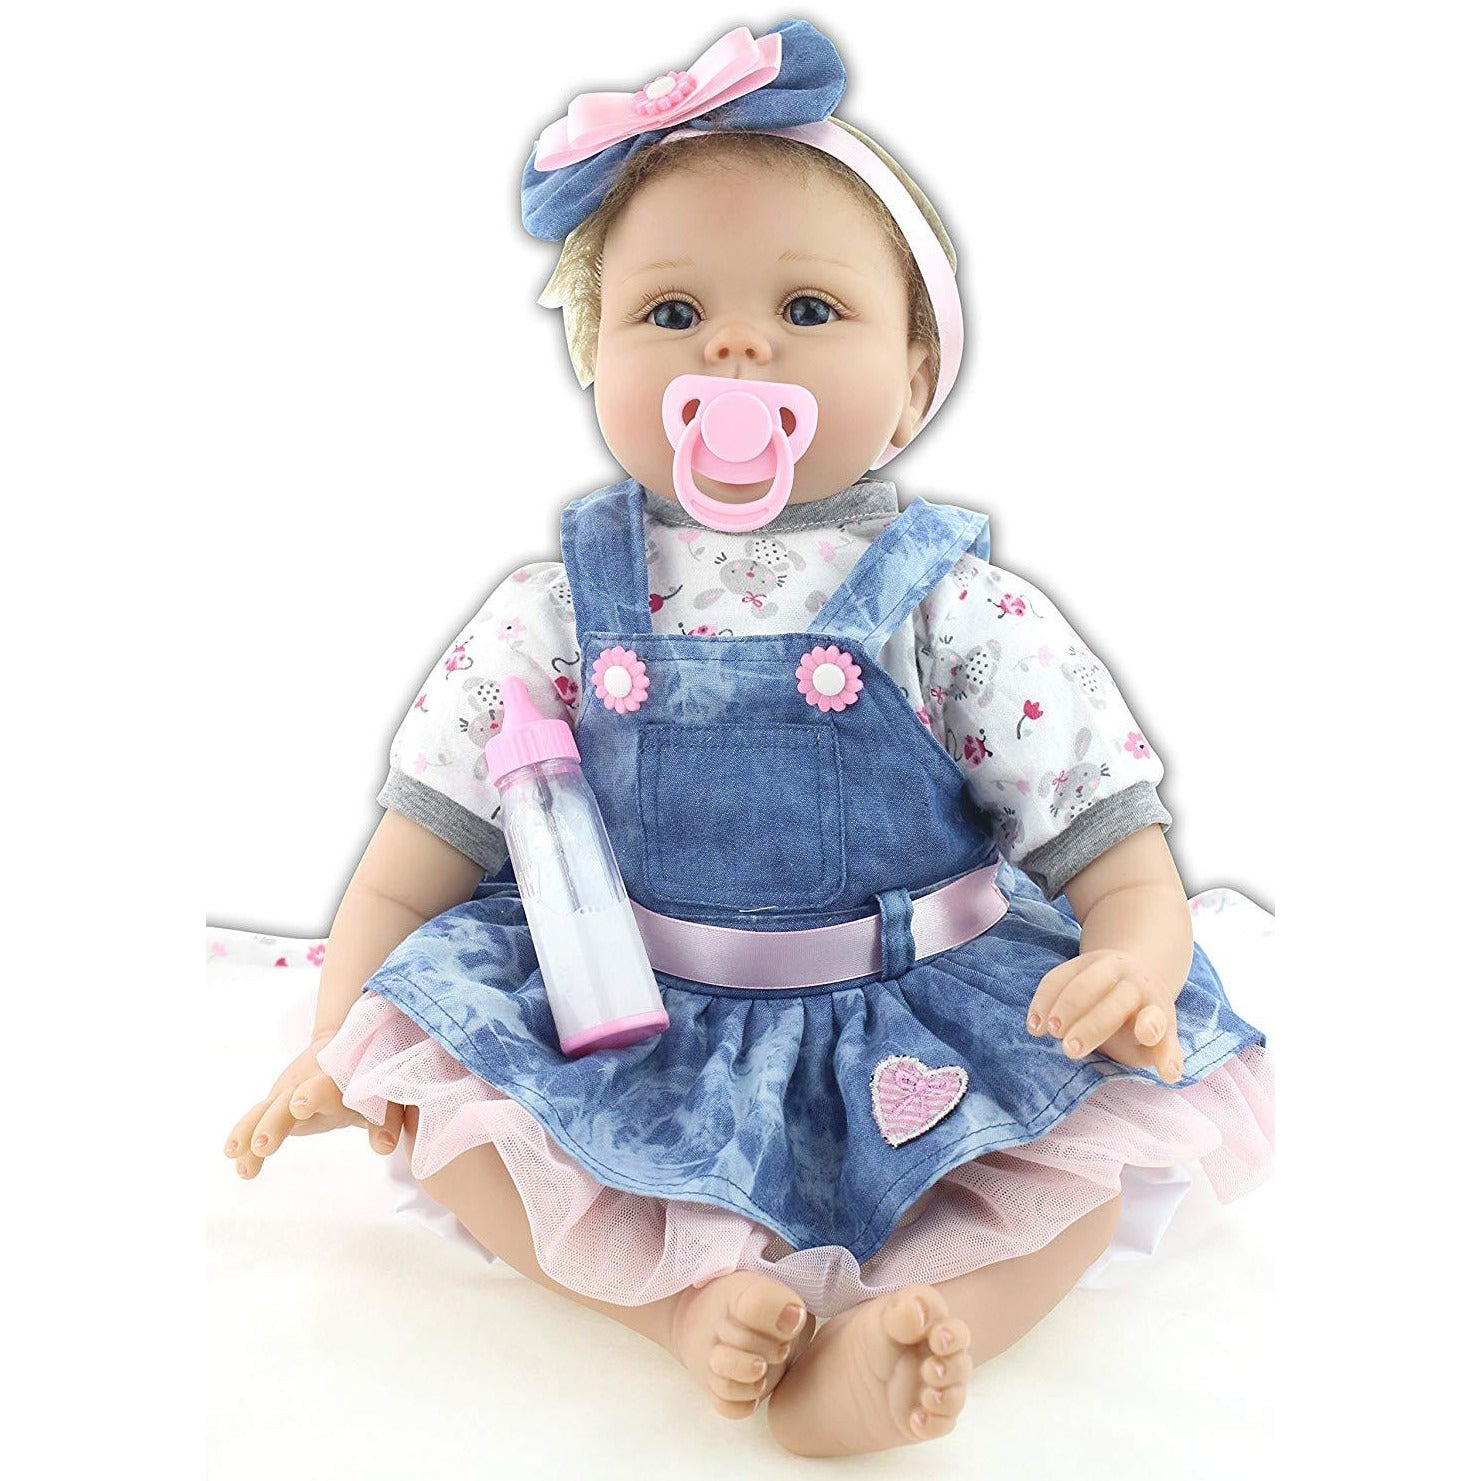 Real Life 22inch 55cm Reborn Baby Dolls Toddler Soft ...